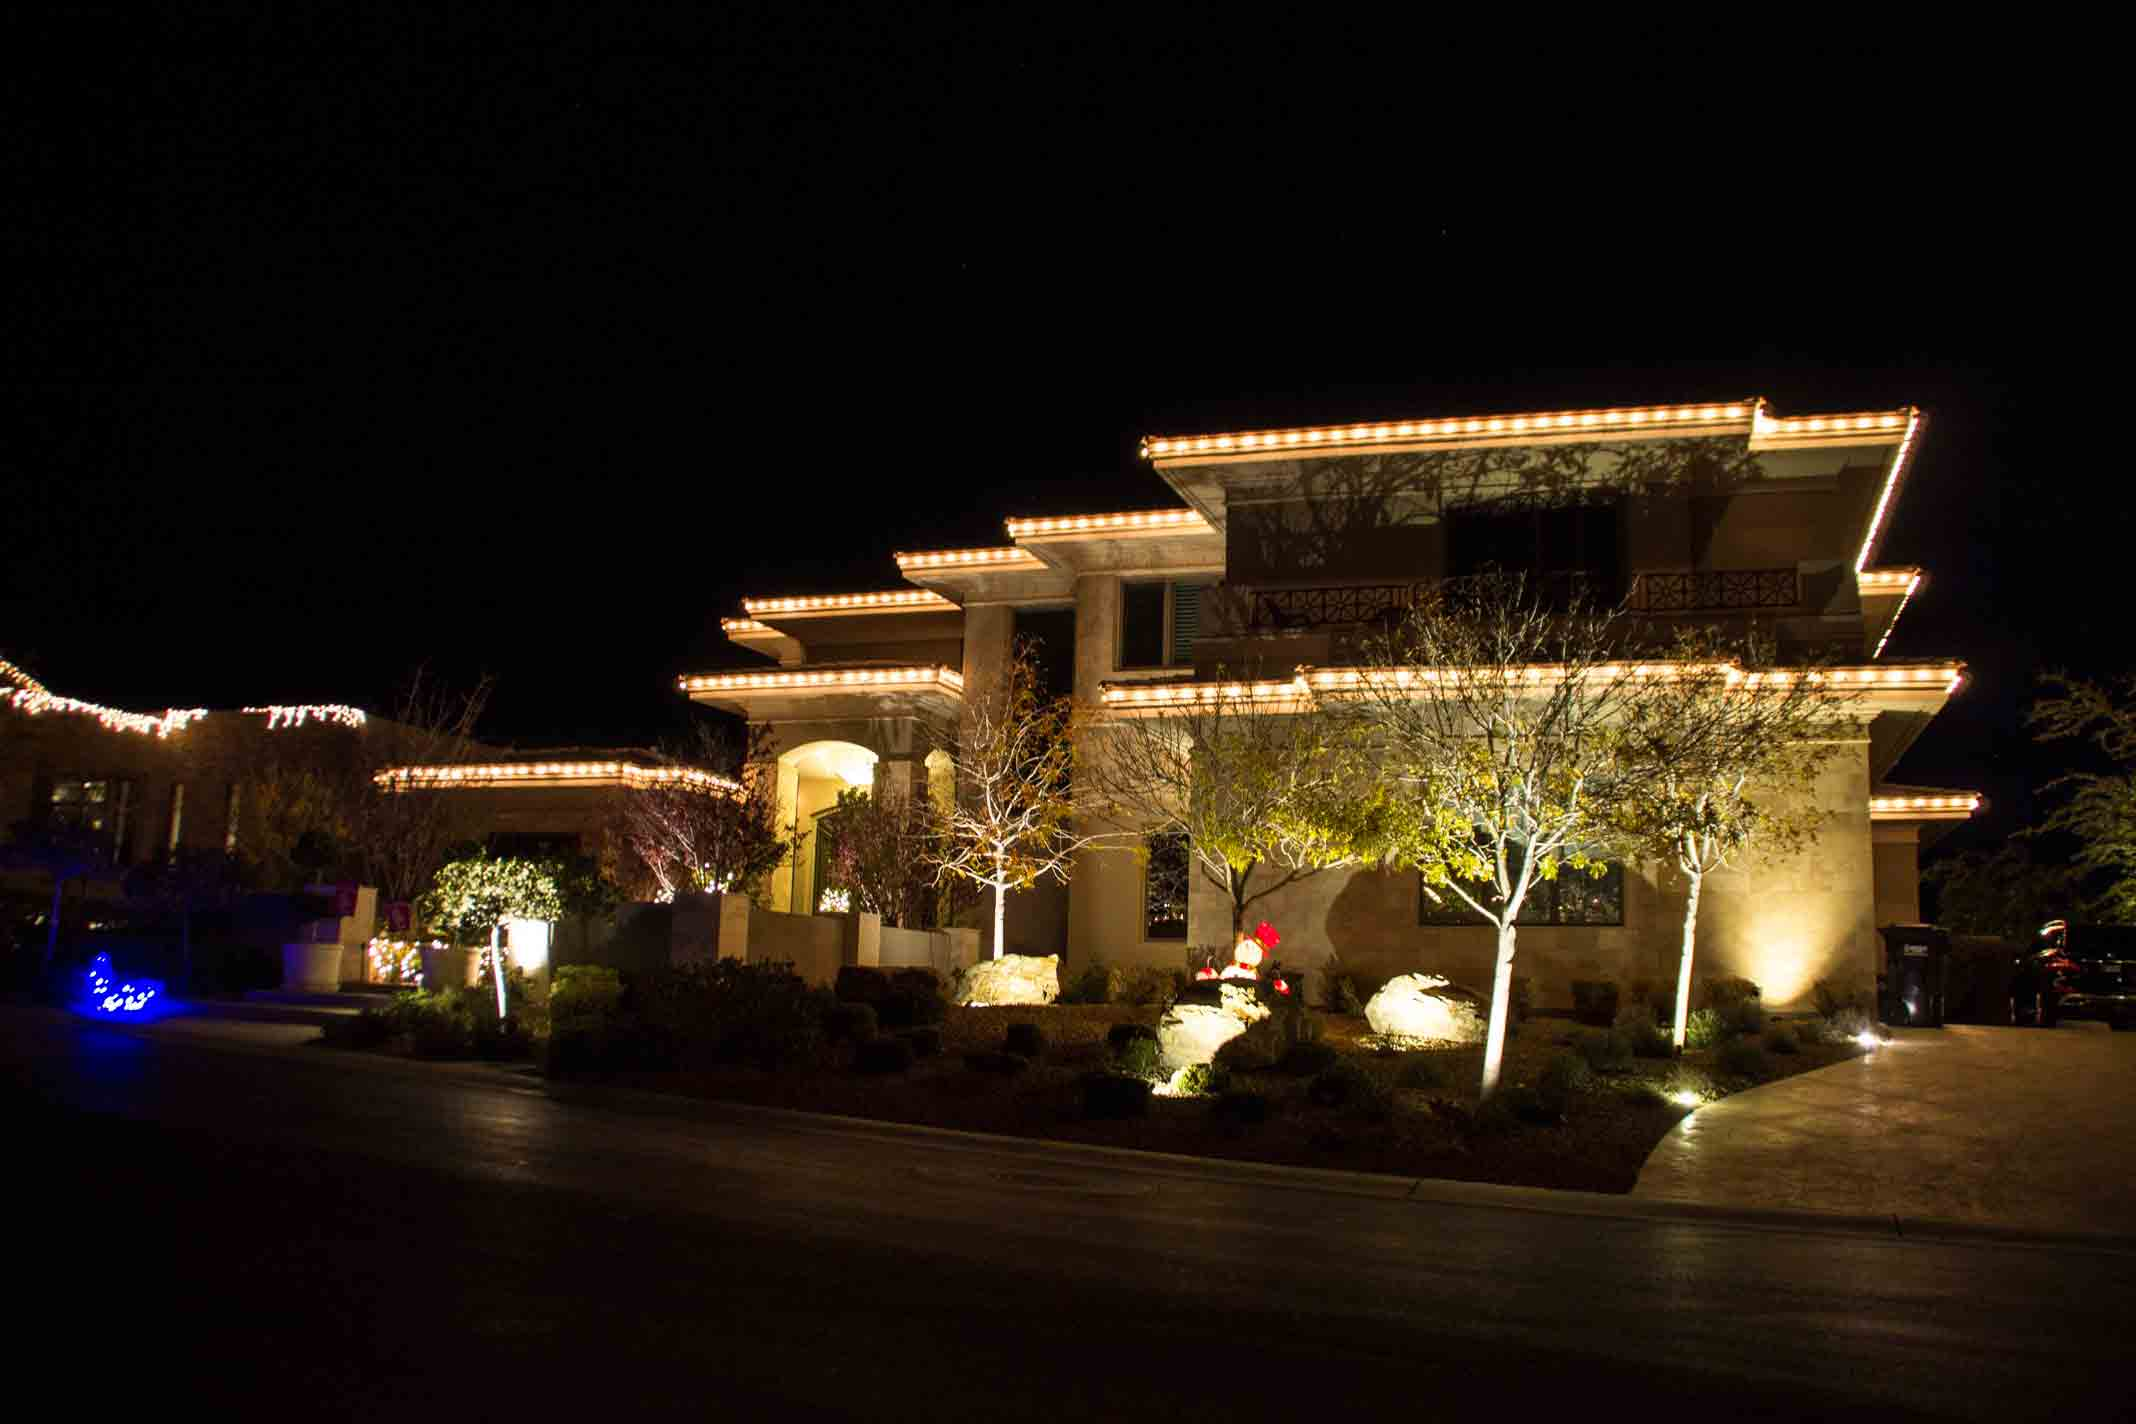 C-9 Christmas lights by Holiday Decorations in Las Vegas